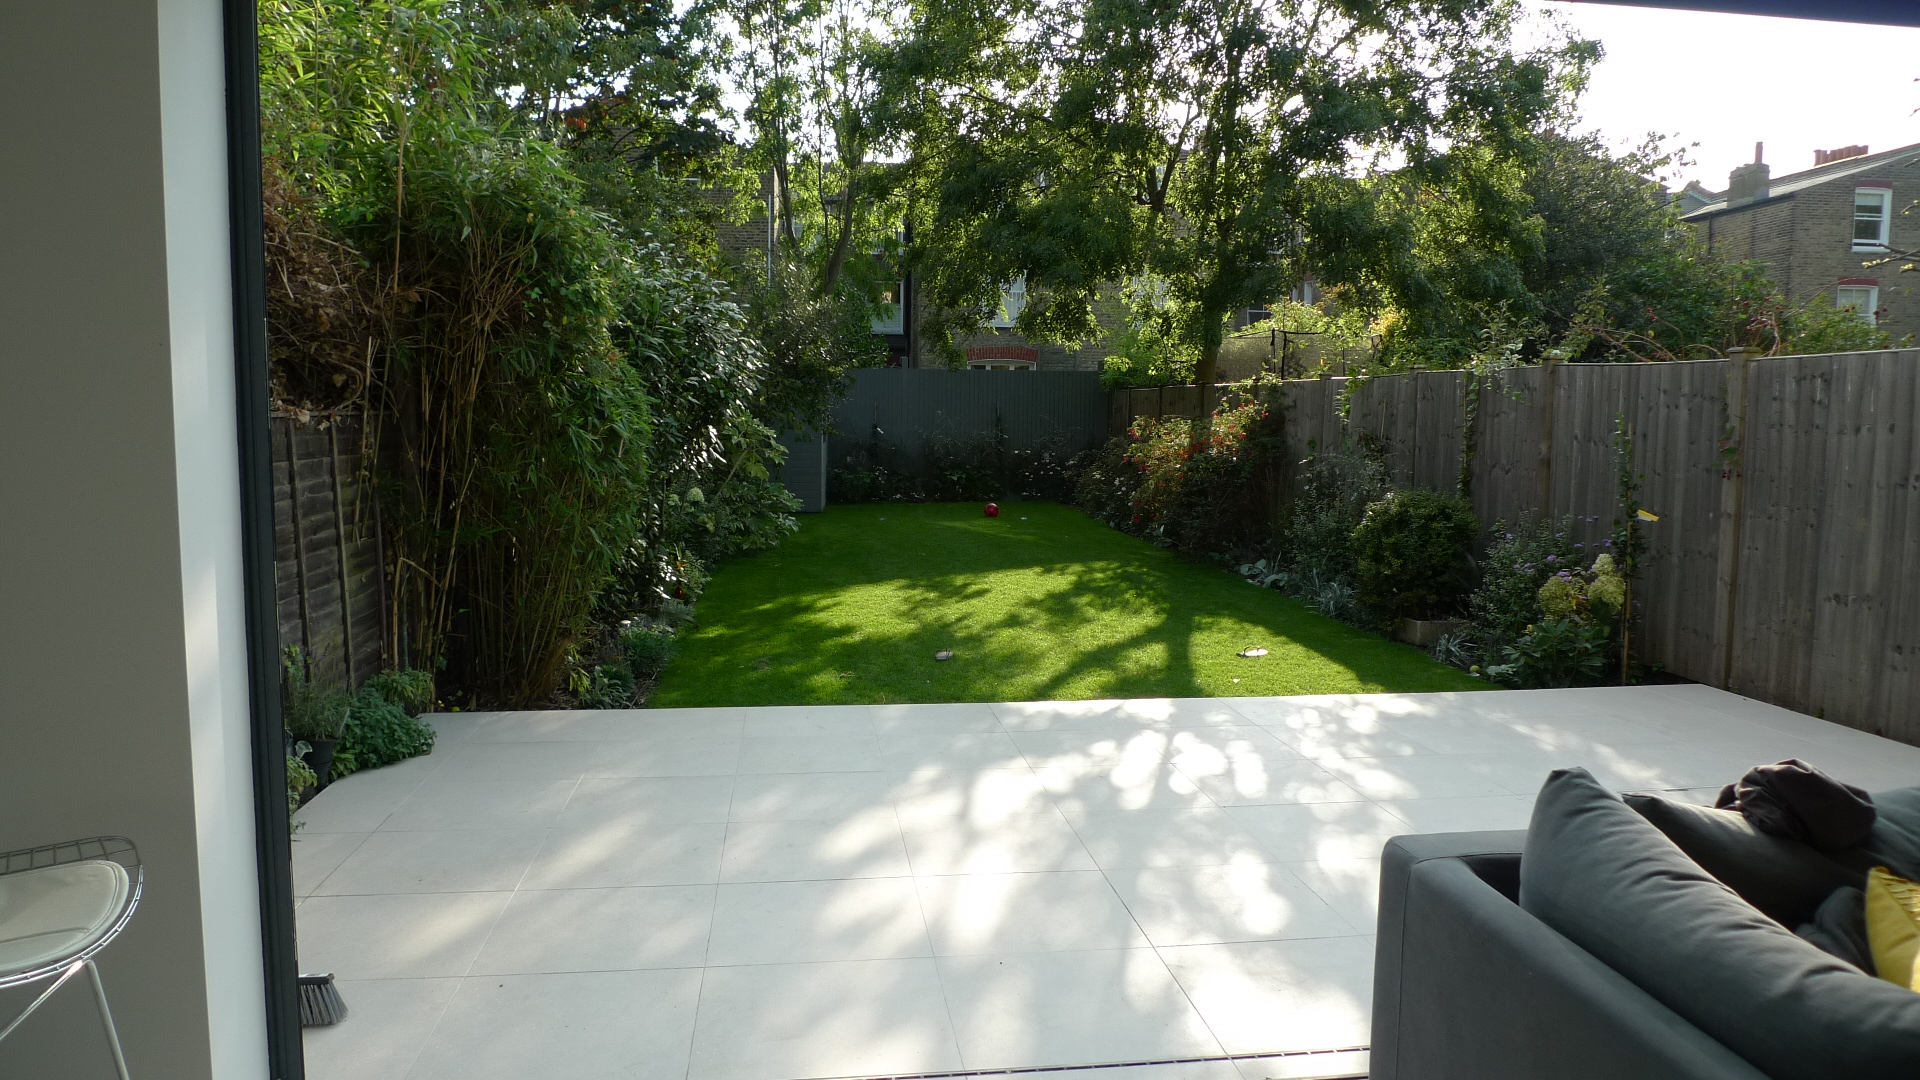 modern interior exterior garden lawn turf house design Weaver Balham Tooting London (3)